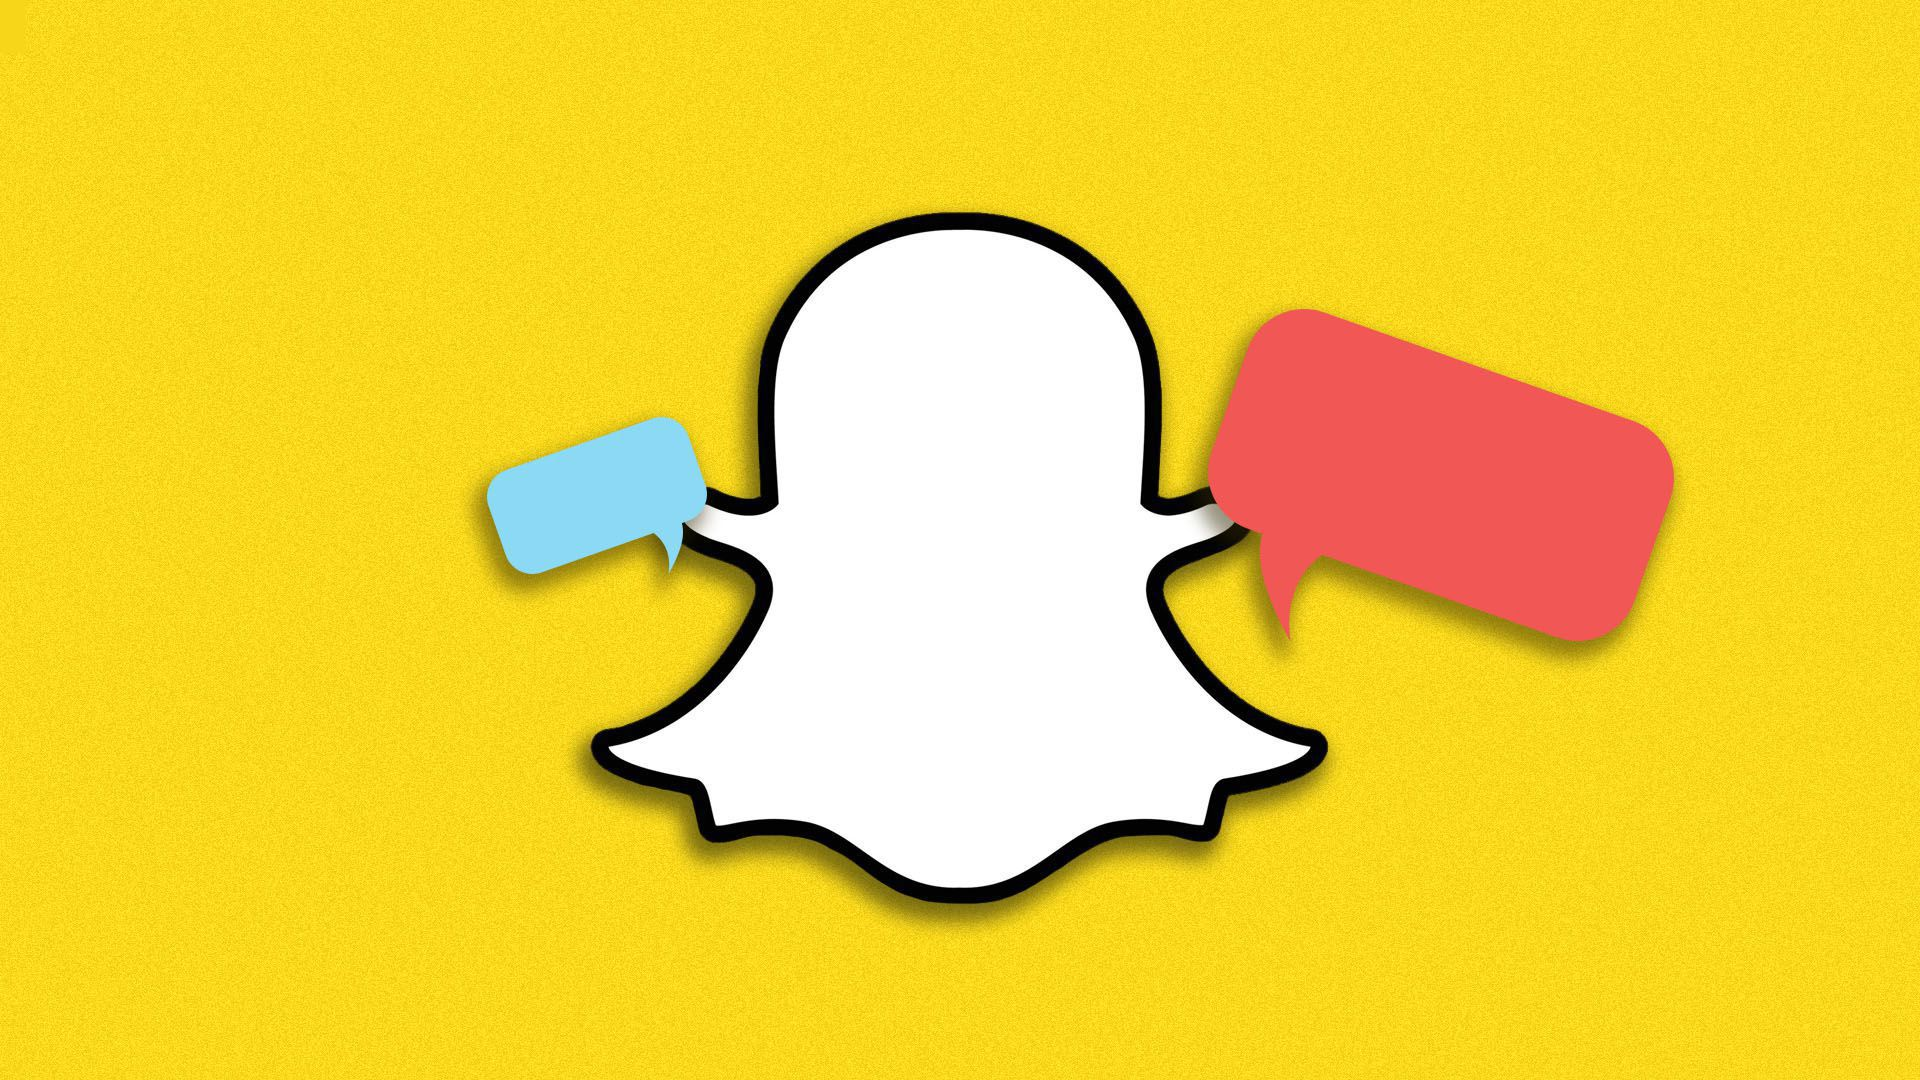 Snapscore Hack - Increase Your Snapchat Score Image